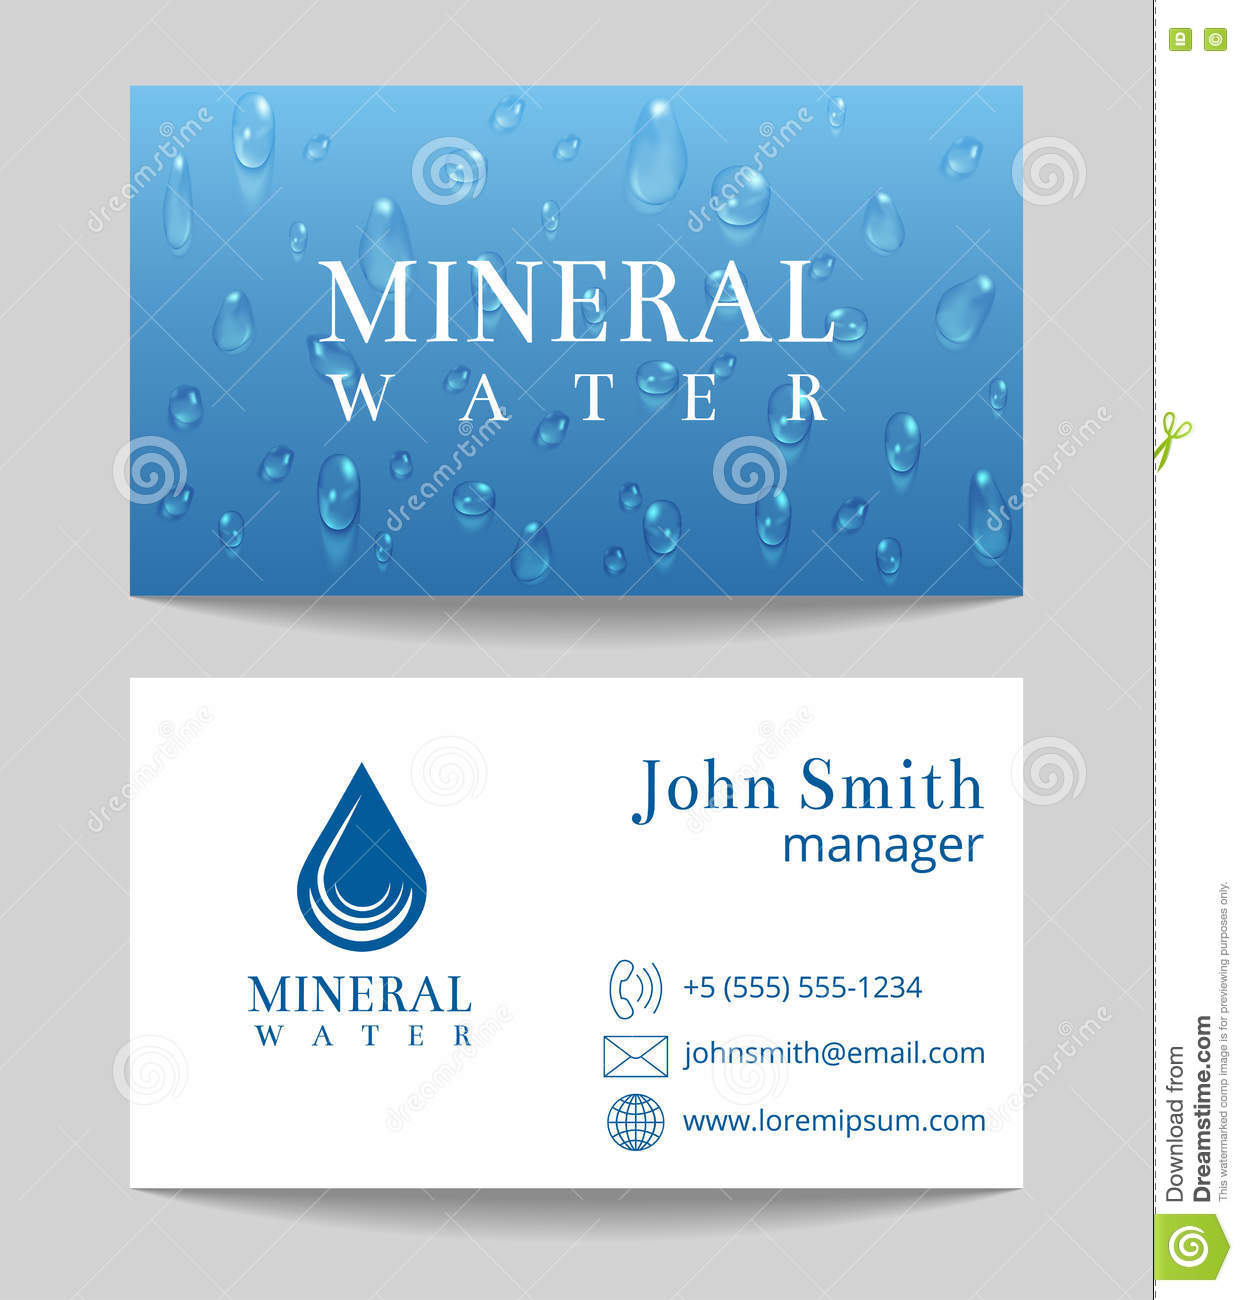 Business Cards Berkeley Images - Card Design And Card Template